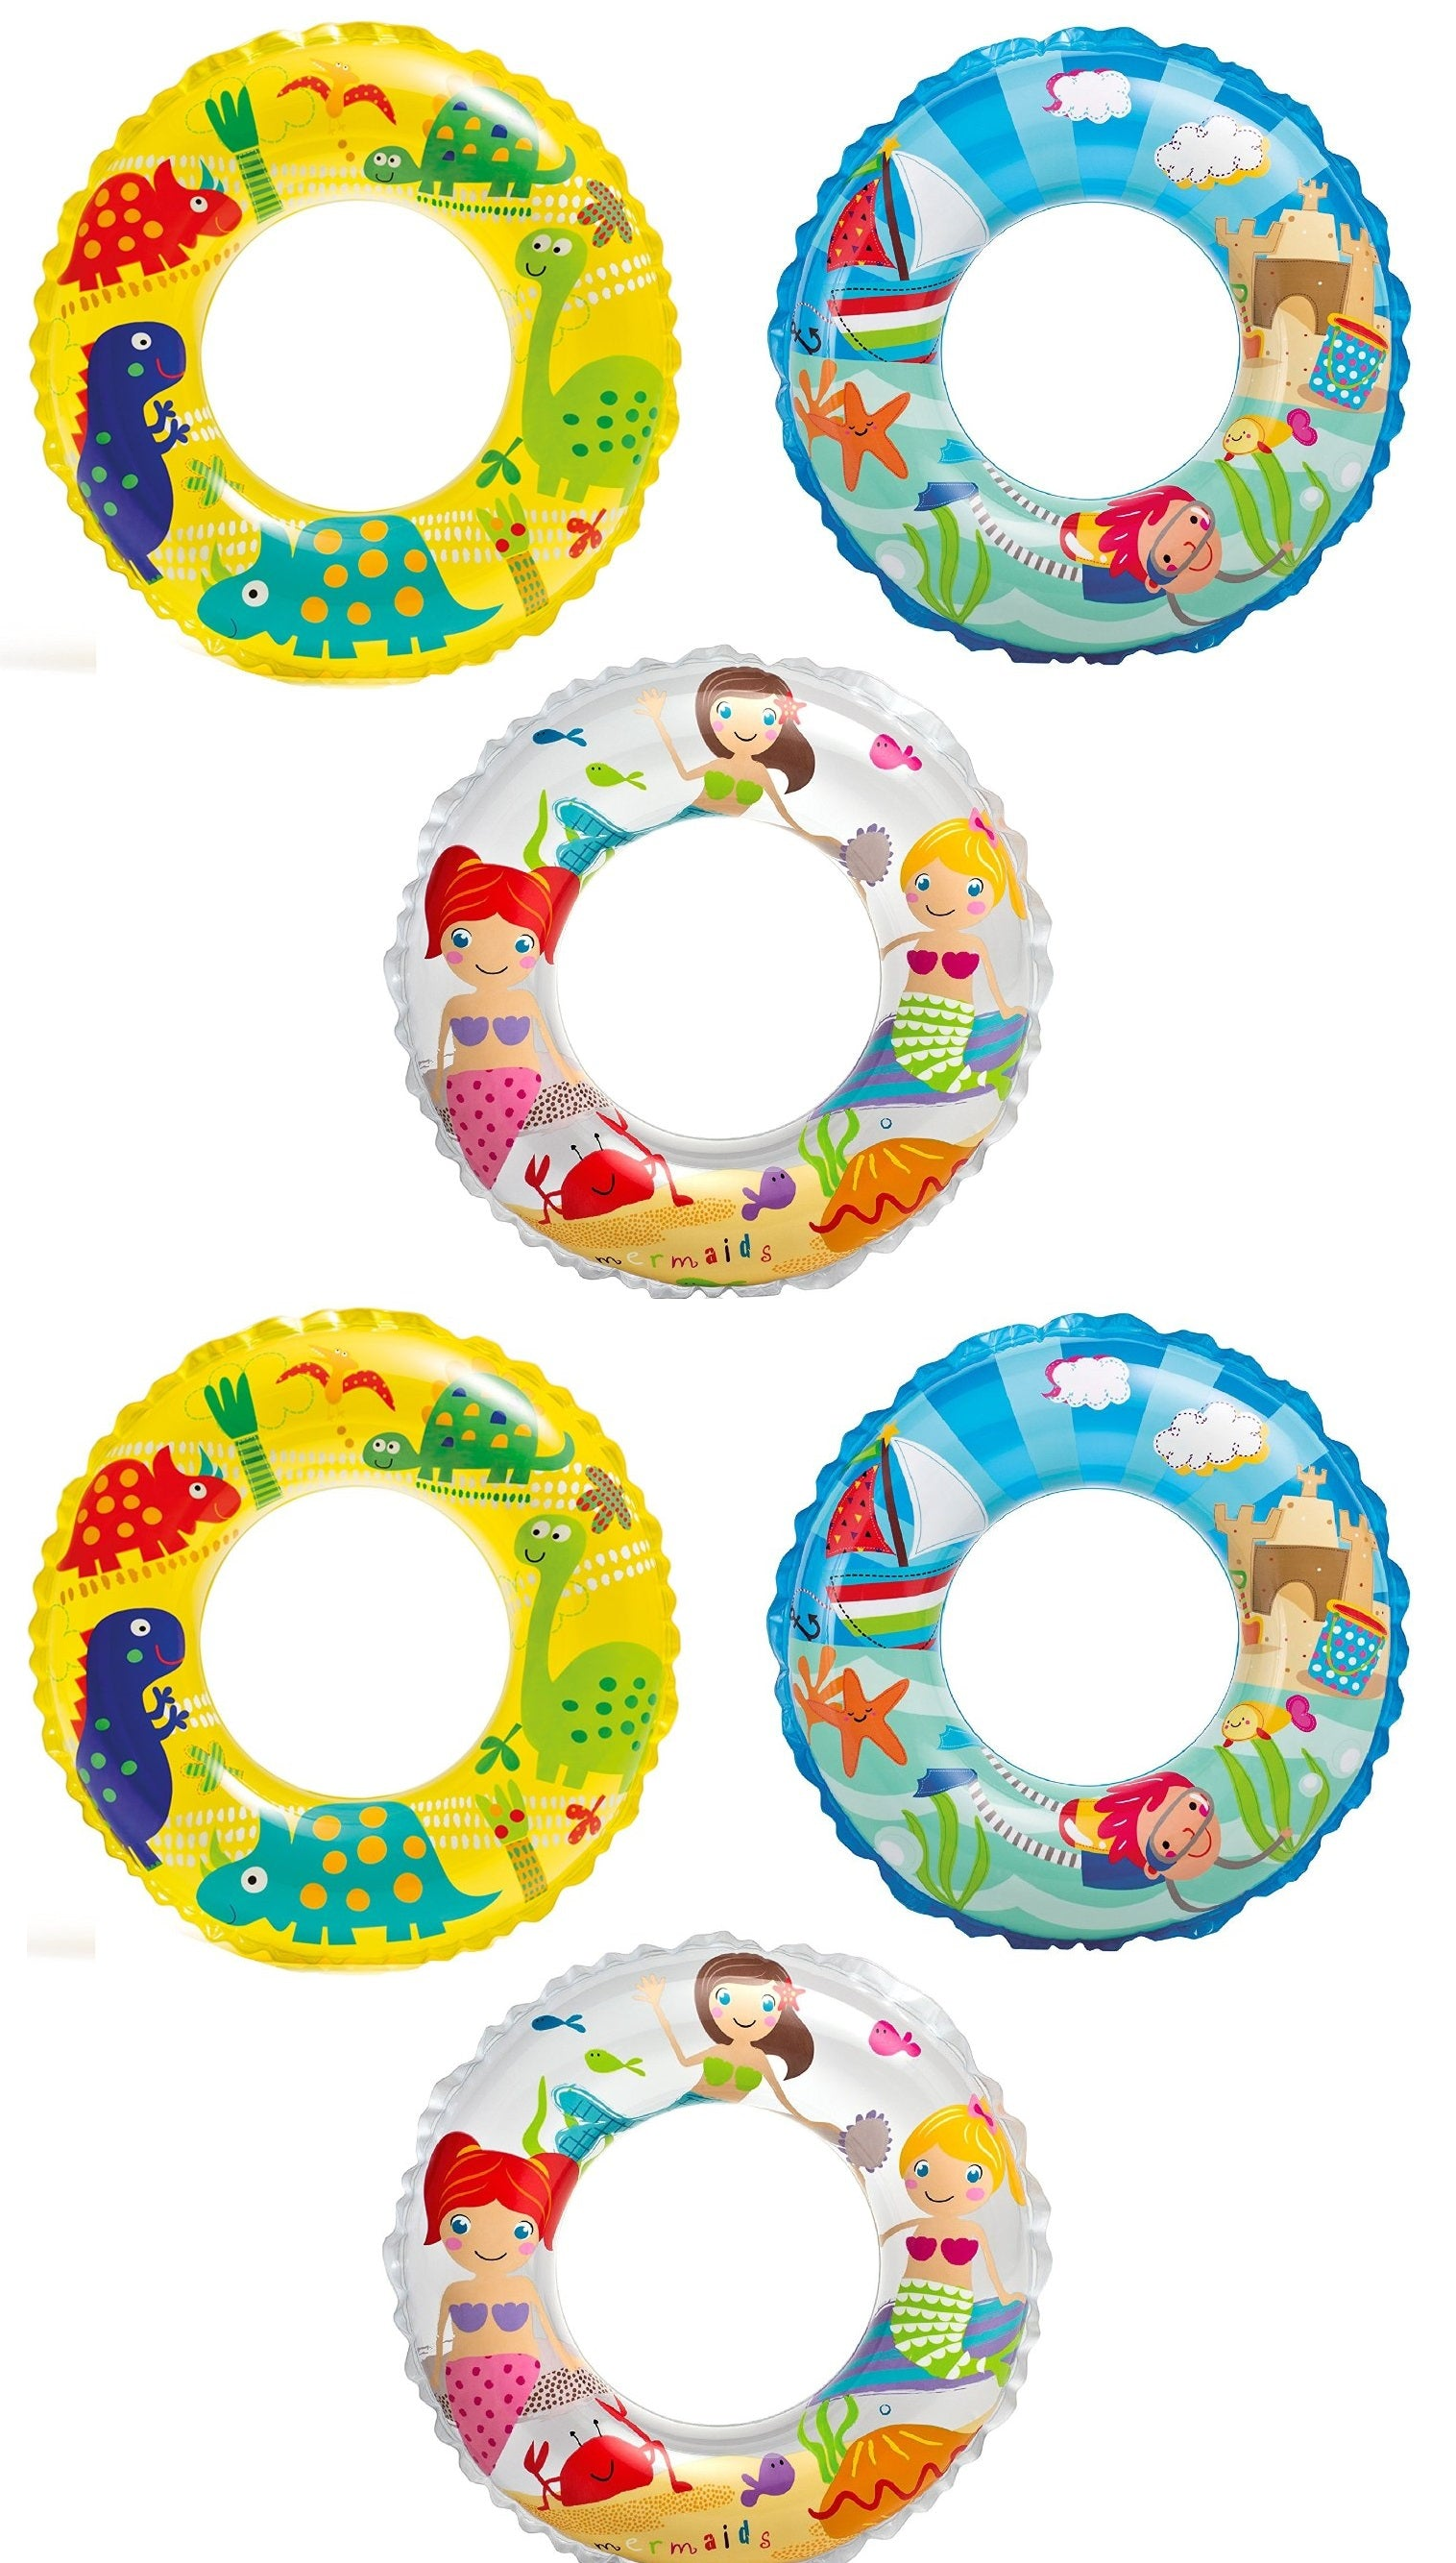 Intex Recreation 59242EP Ocean Reef Transparent Rings, Pack of 6